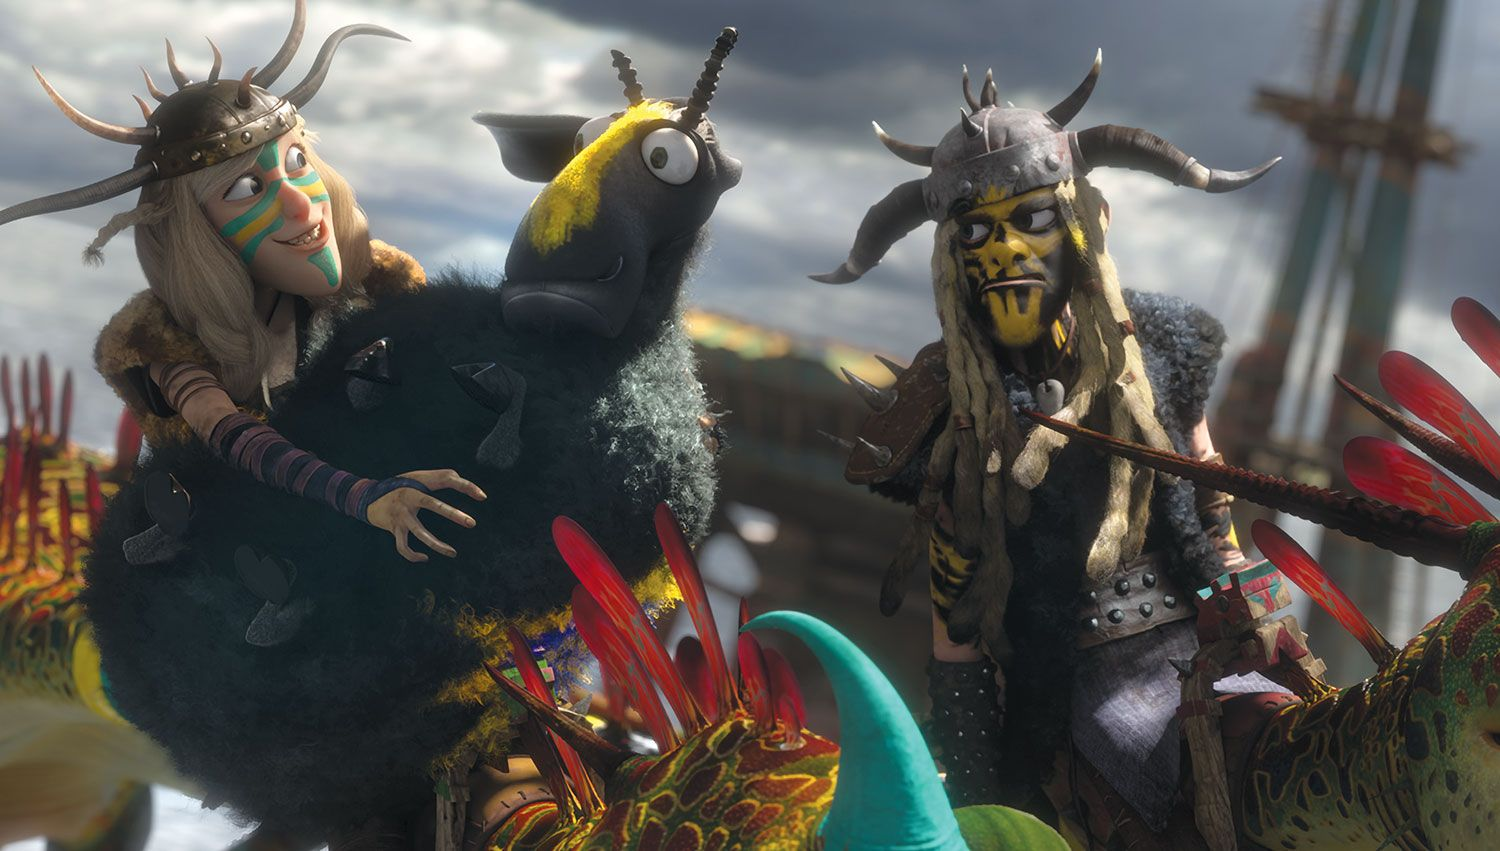 How to Train Your Dragon 2 I love these two Especially the guy